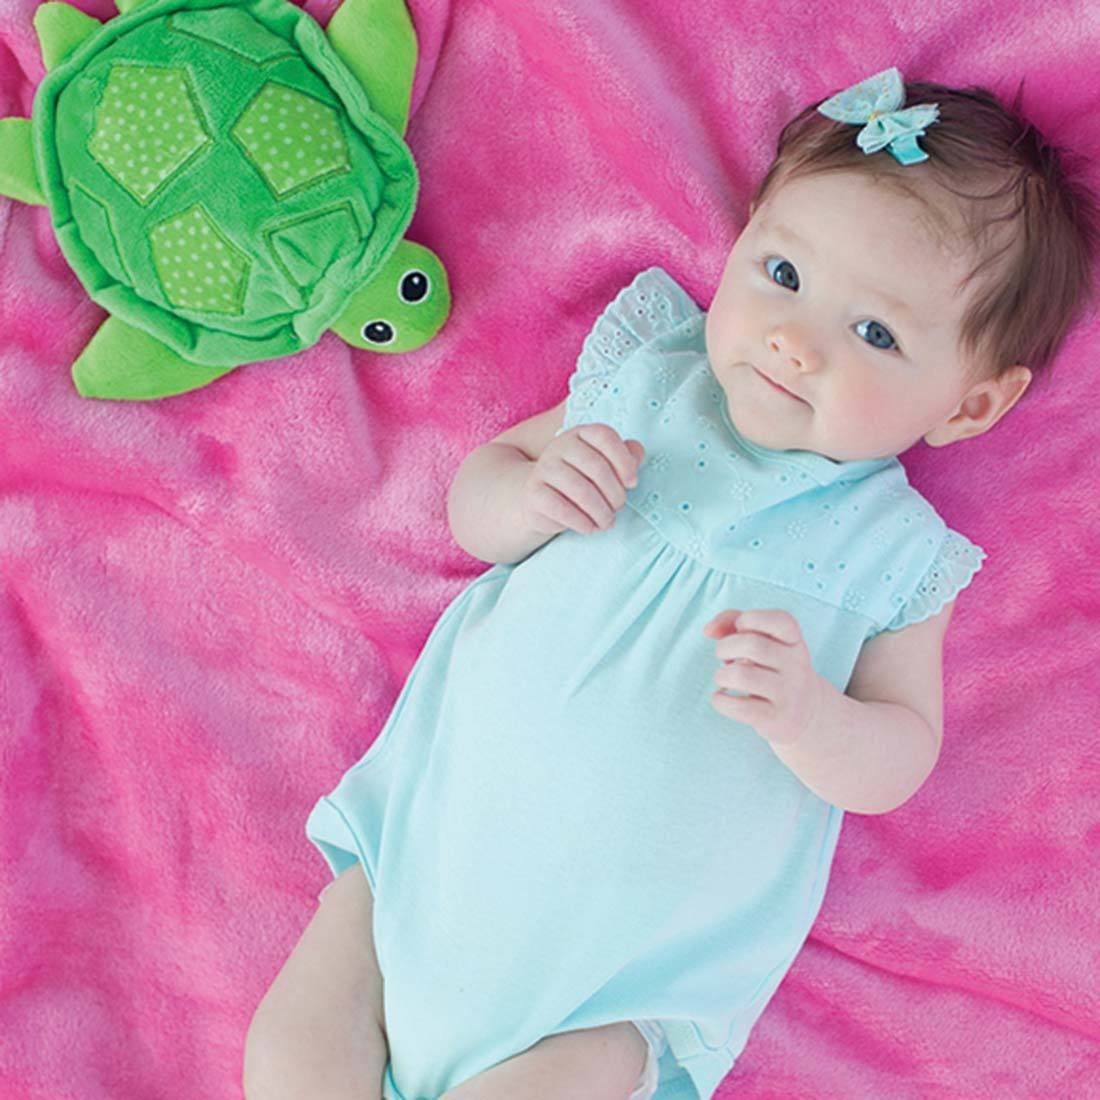 ZOOCCHINI Baby Buddy Stroller Blanket - Tammy the Turtle